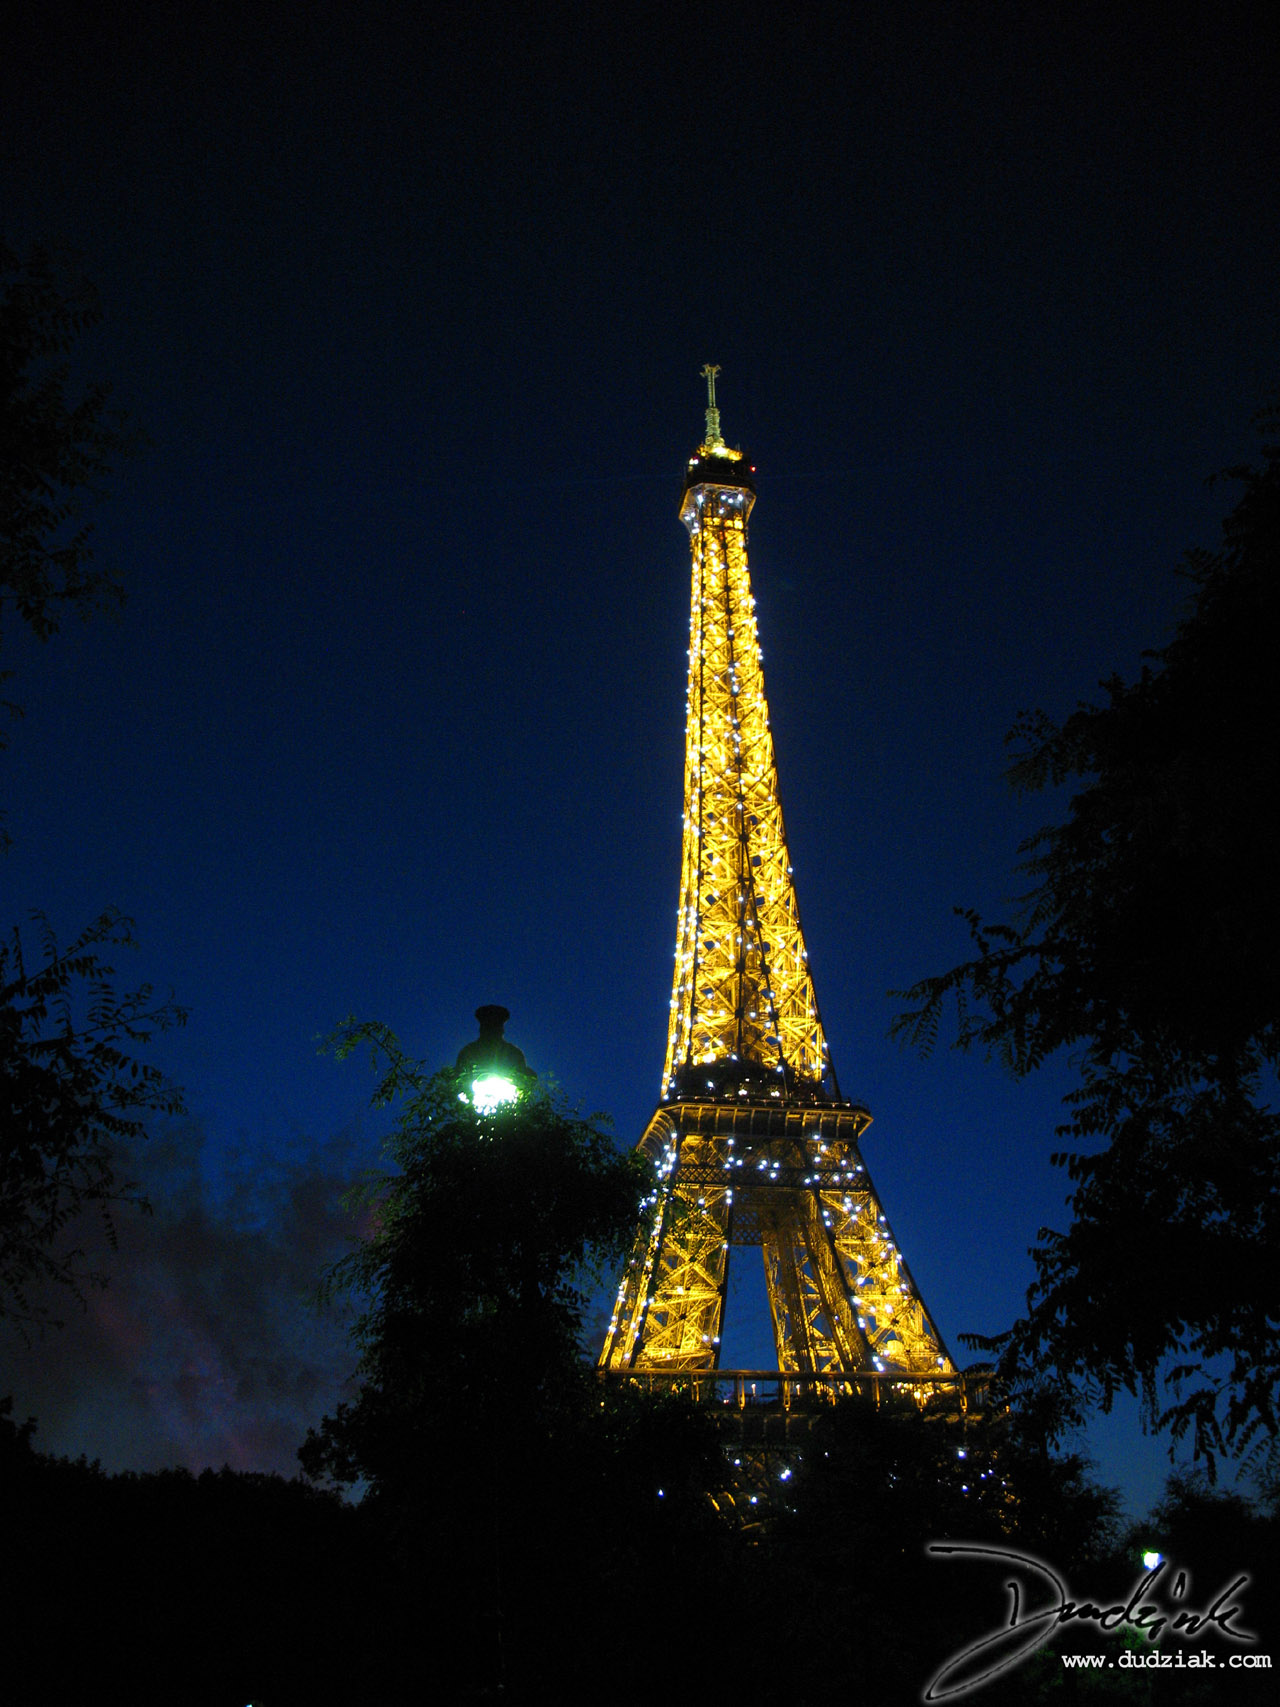 Lighted,  Night,  Eiffel Tower,  Paris France